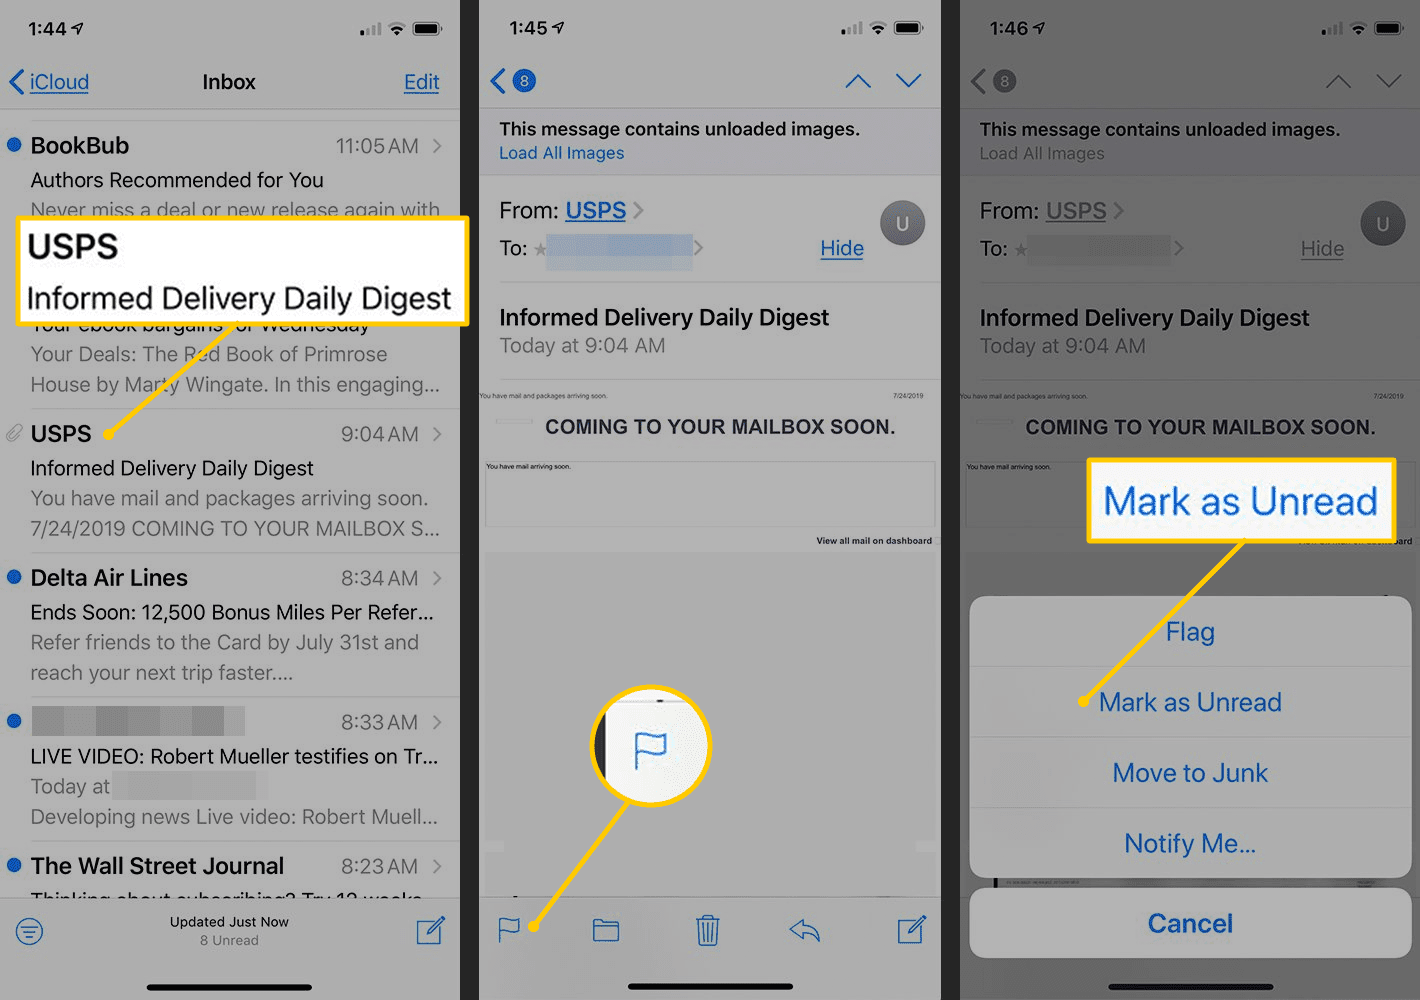 How to Mark Email Unread in iPhone Mail